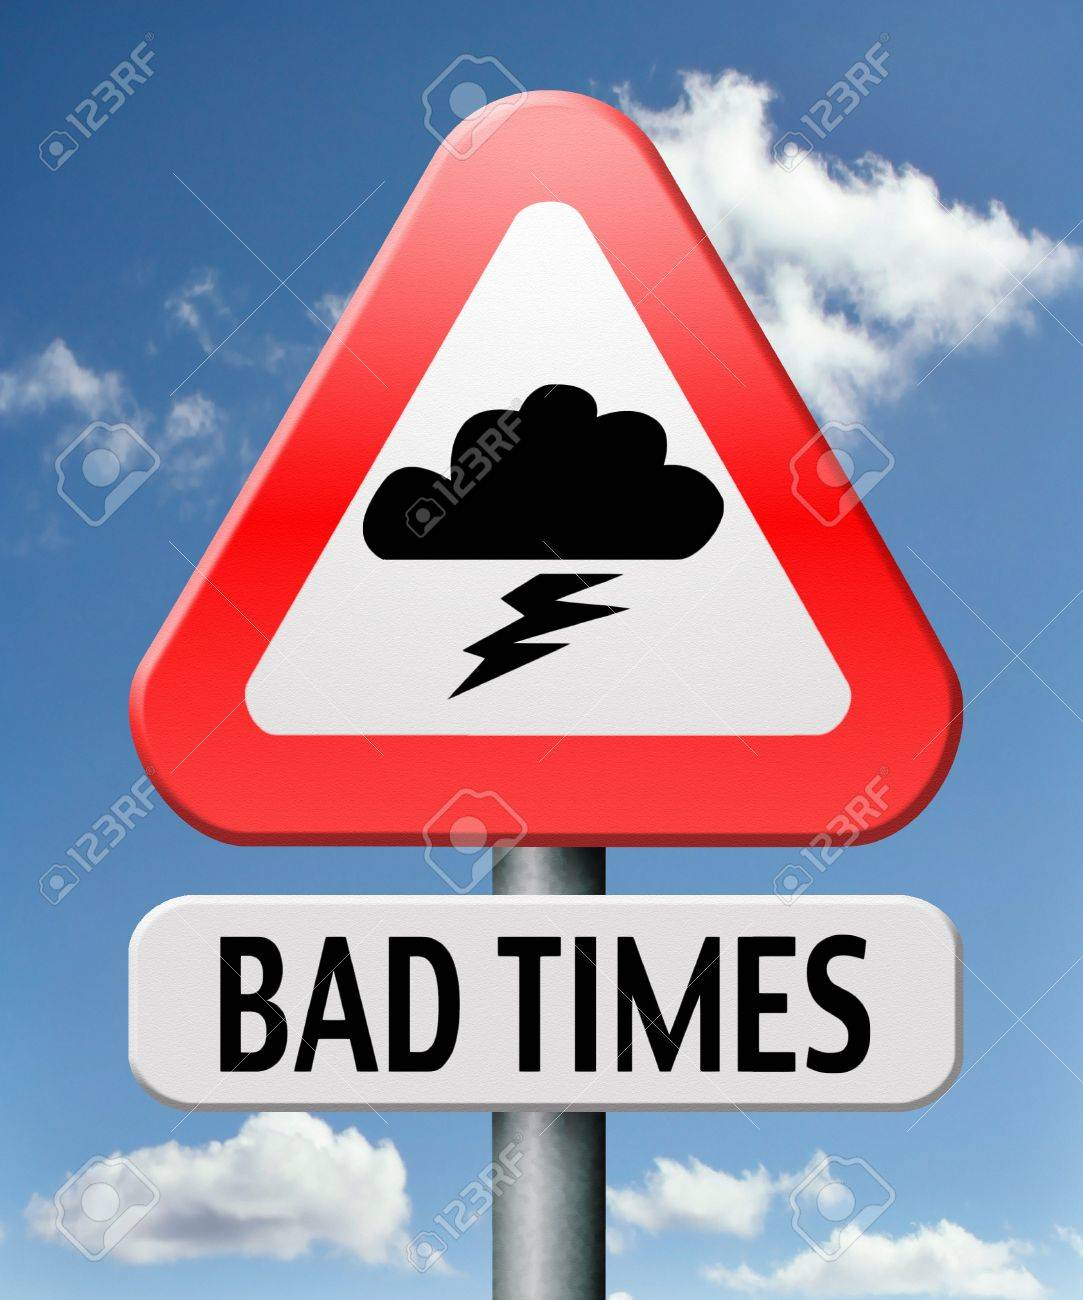 bad times no luck because of misfortune resession and crisis unlucky day ahead problems in near future warning for big troubles and failure pessimistic prediction negative view to future and pessimism Stock Photo - 17463007